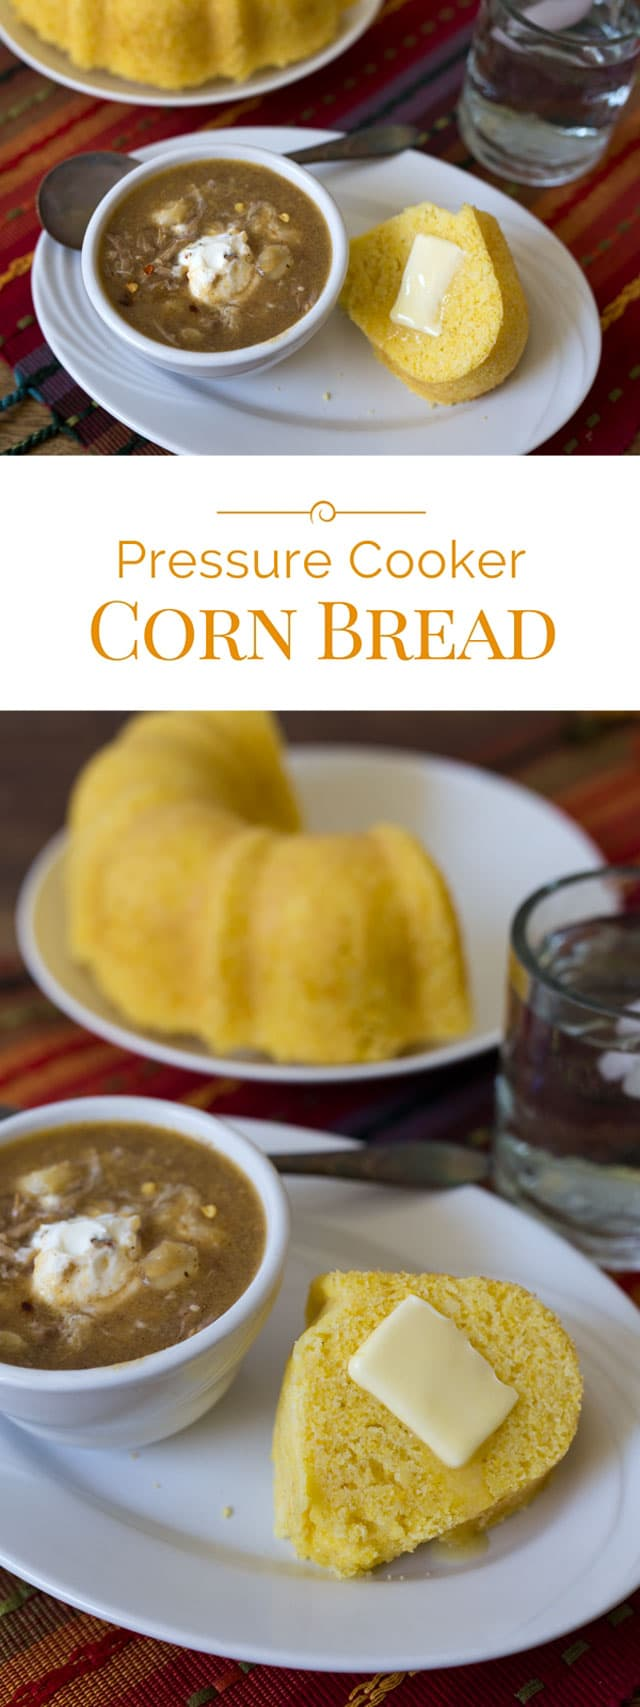 titled photo collage - Pressure Cooker Corn Bread